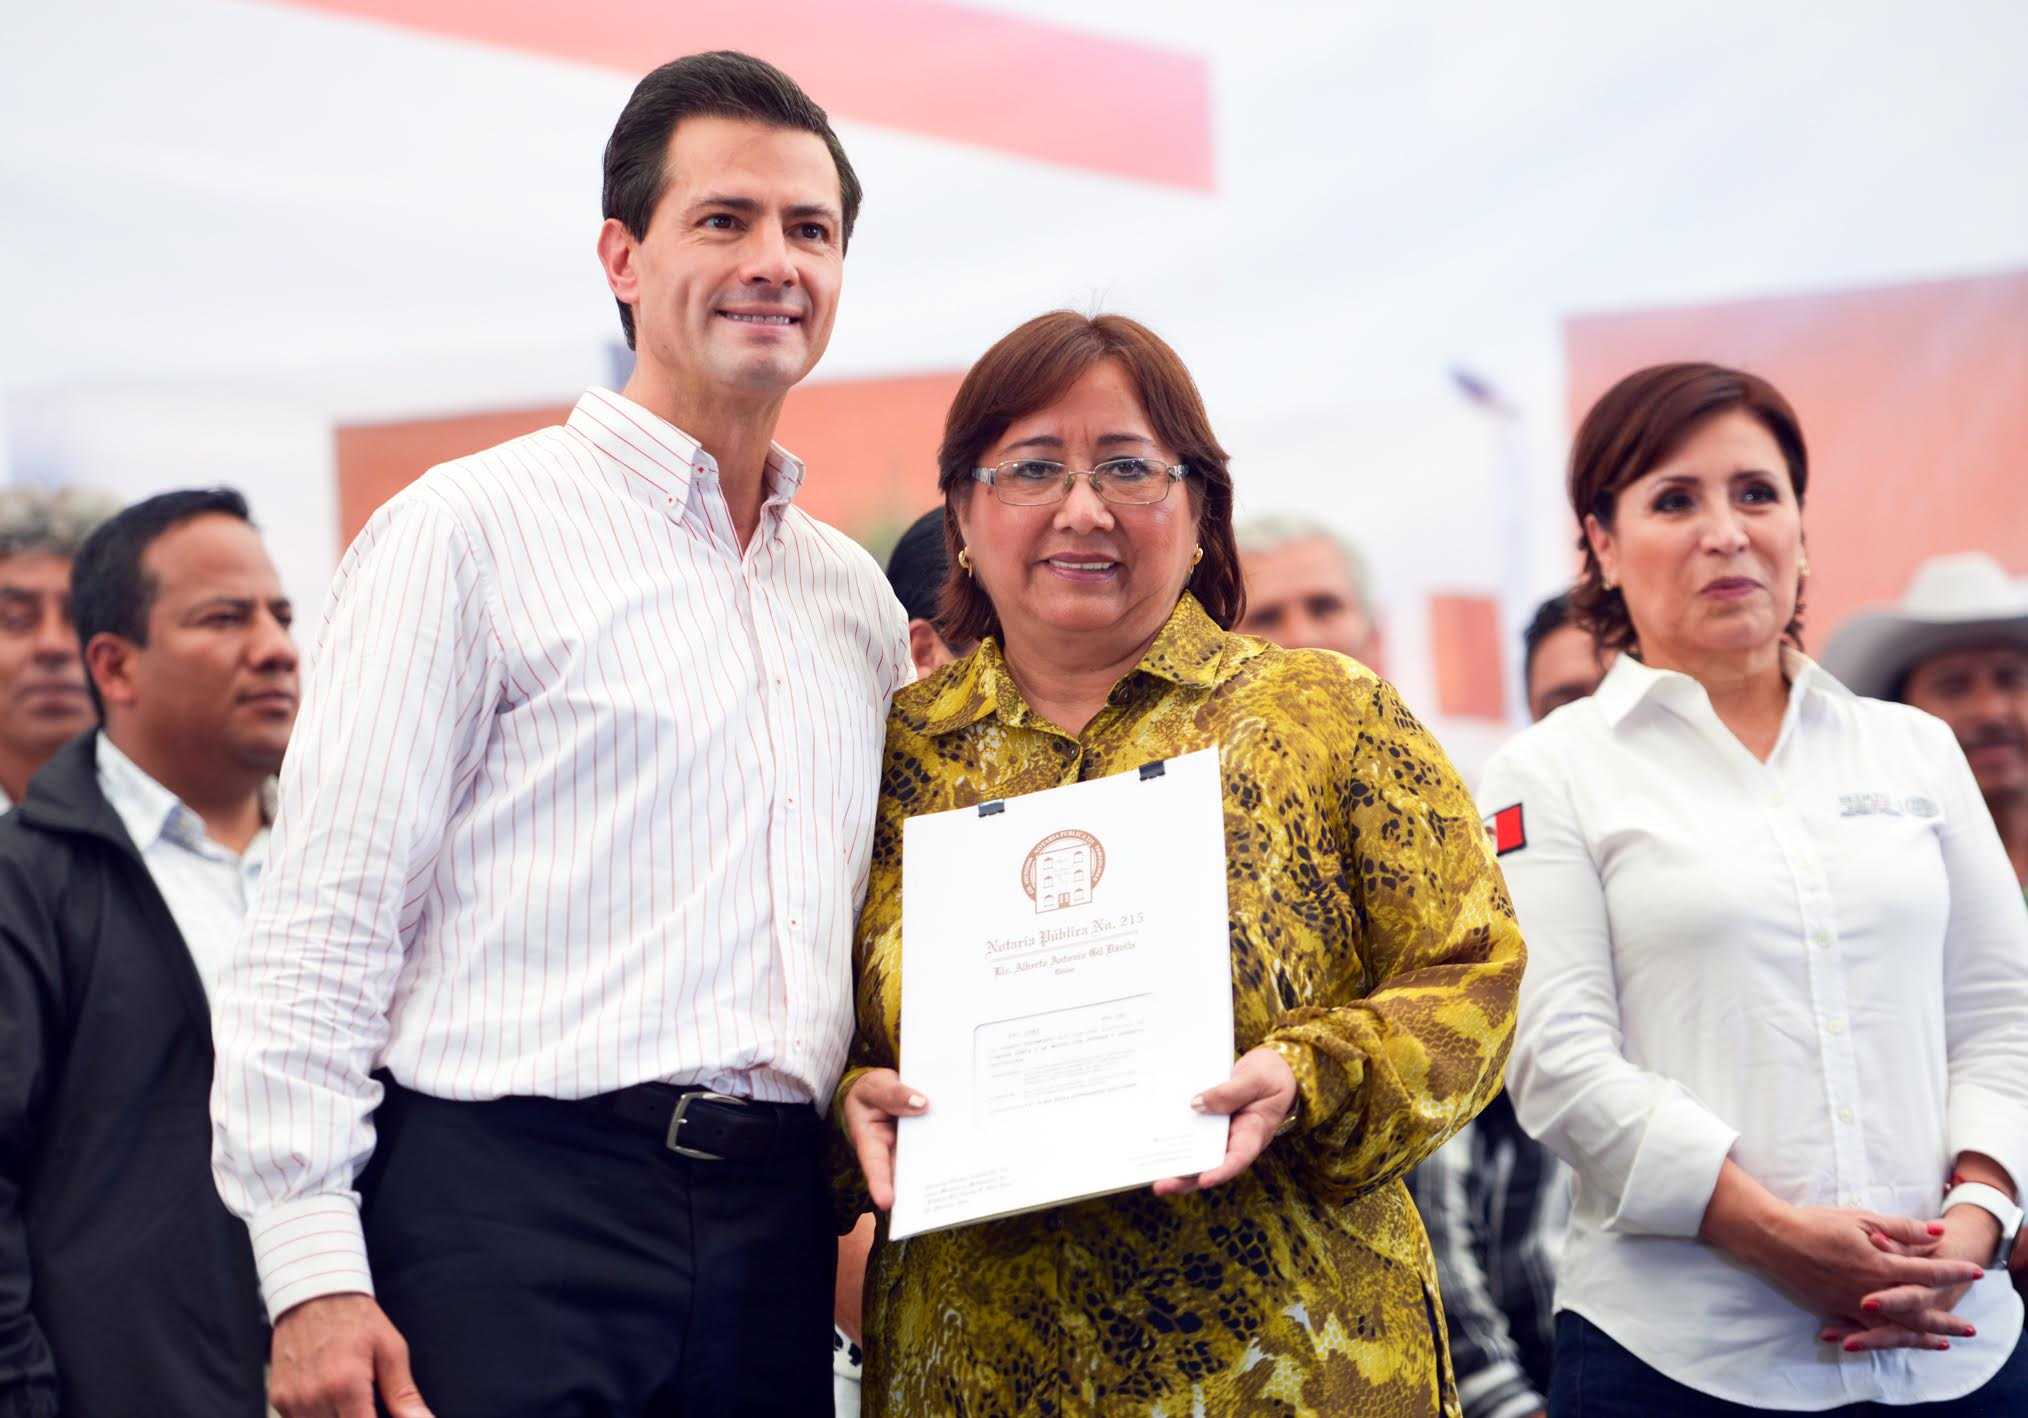 In 2015, according to data from INEGI, Mexico's economy grew 2.5 percent. In the first three years of government, the country's economy has grown by slightly more than  a total of 6 percent, declared the president.